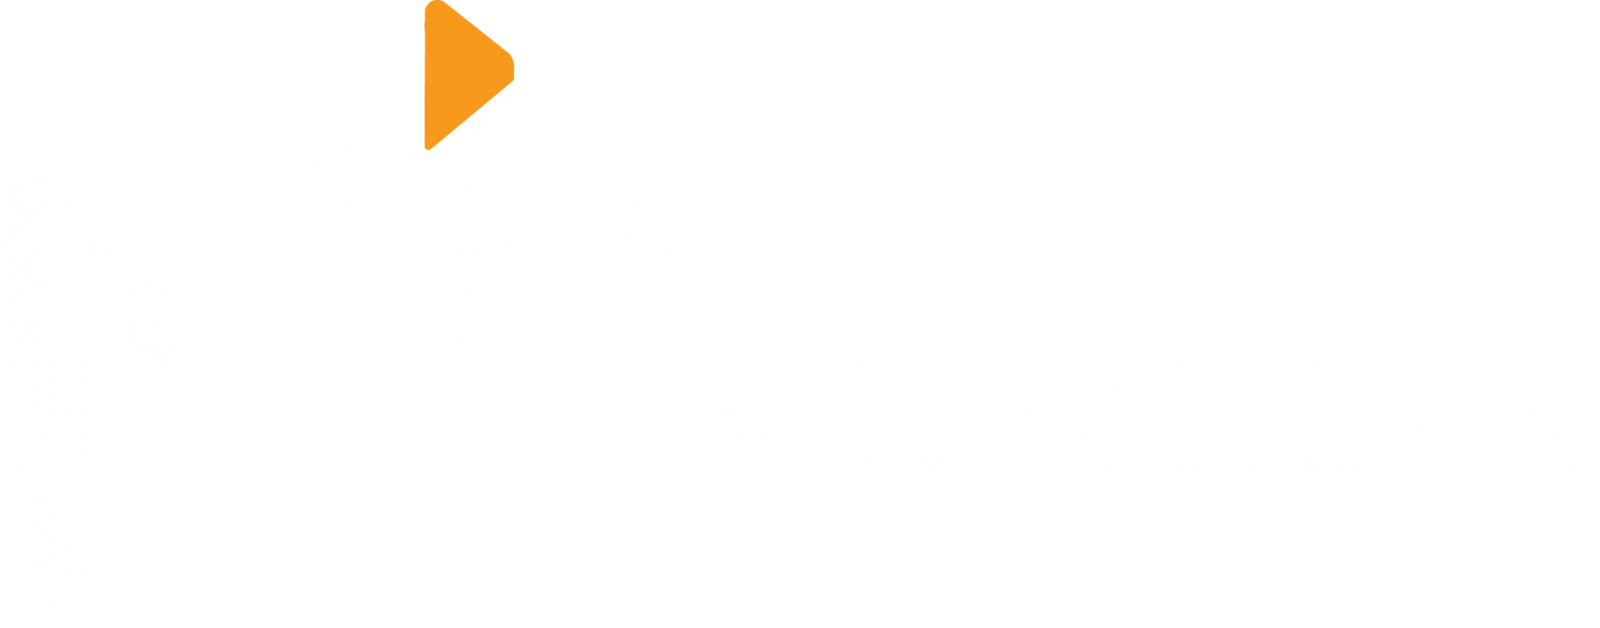 Migher World Logo Inverse Web Design, Digital Marketing, E-Commerce, Branding, Creative Design, Website Maintenance., Training Services, Migher World